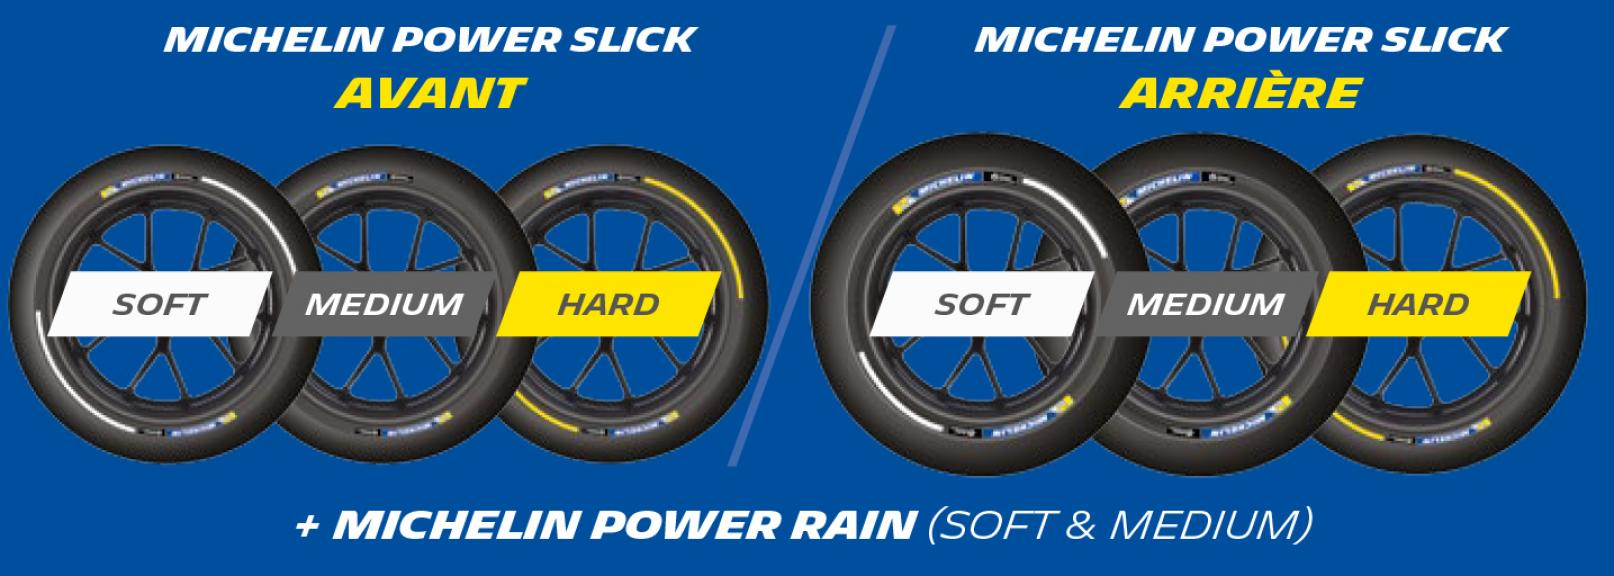 Michelin_French_Montmelo